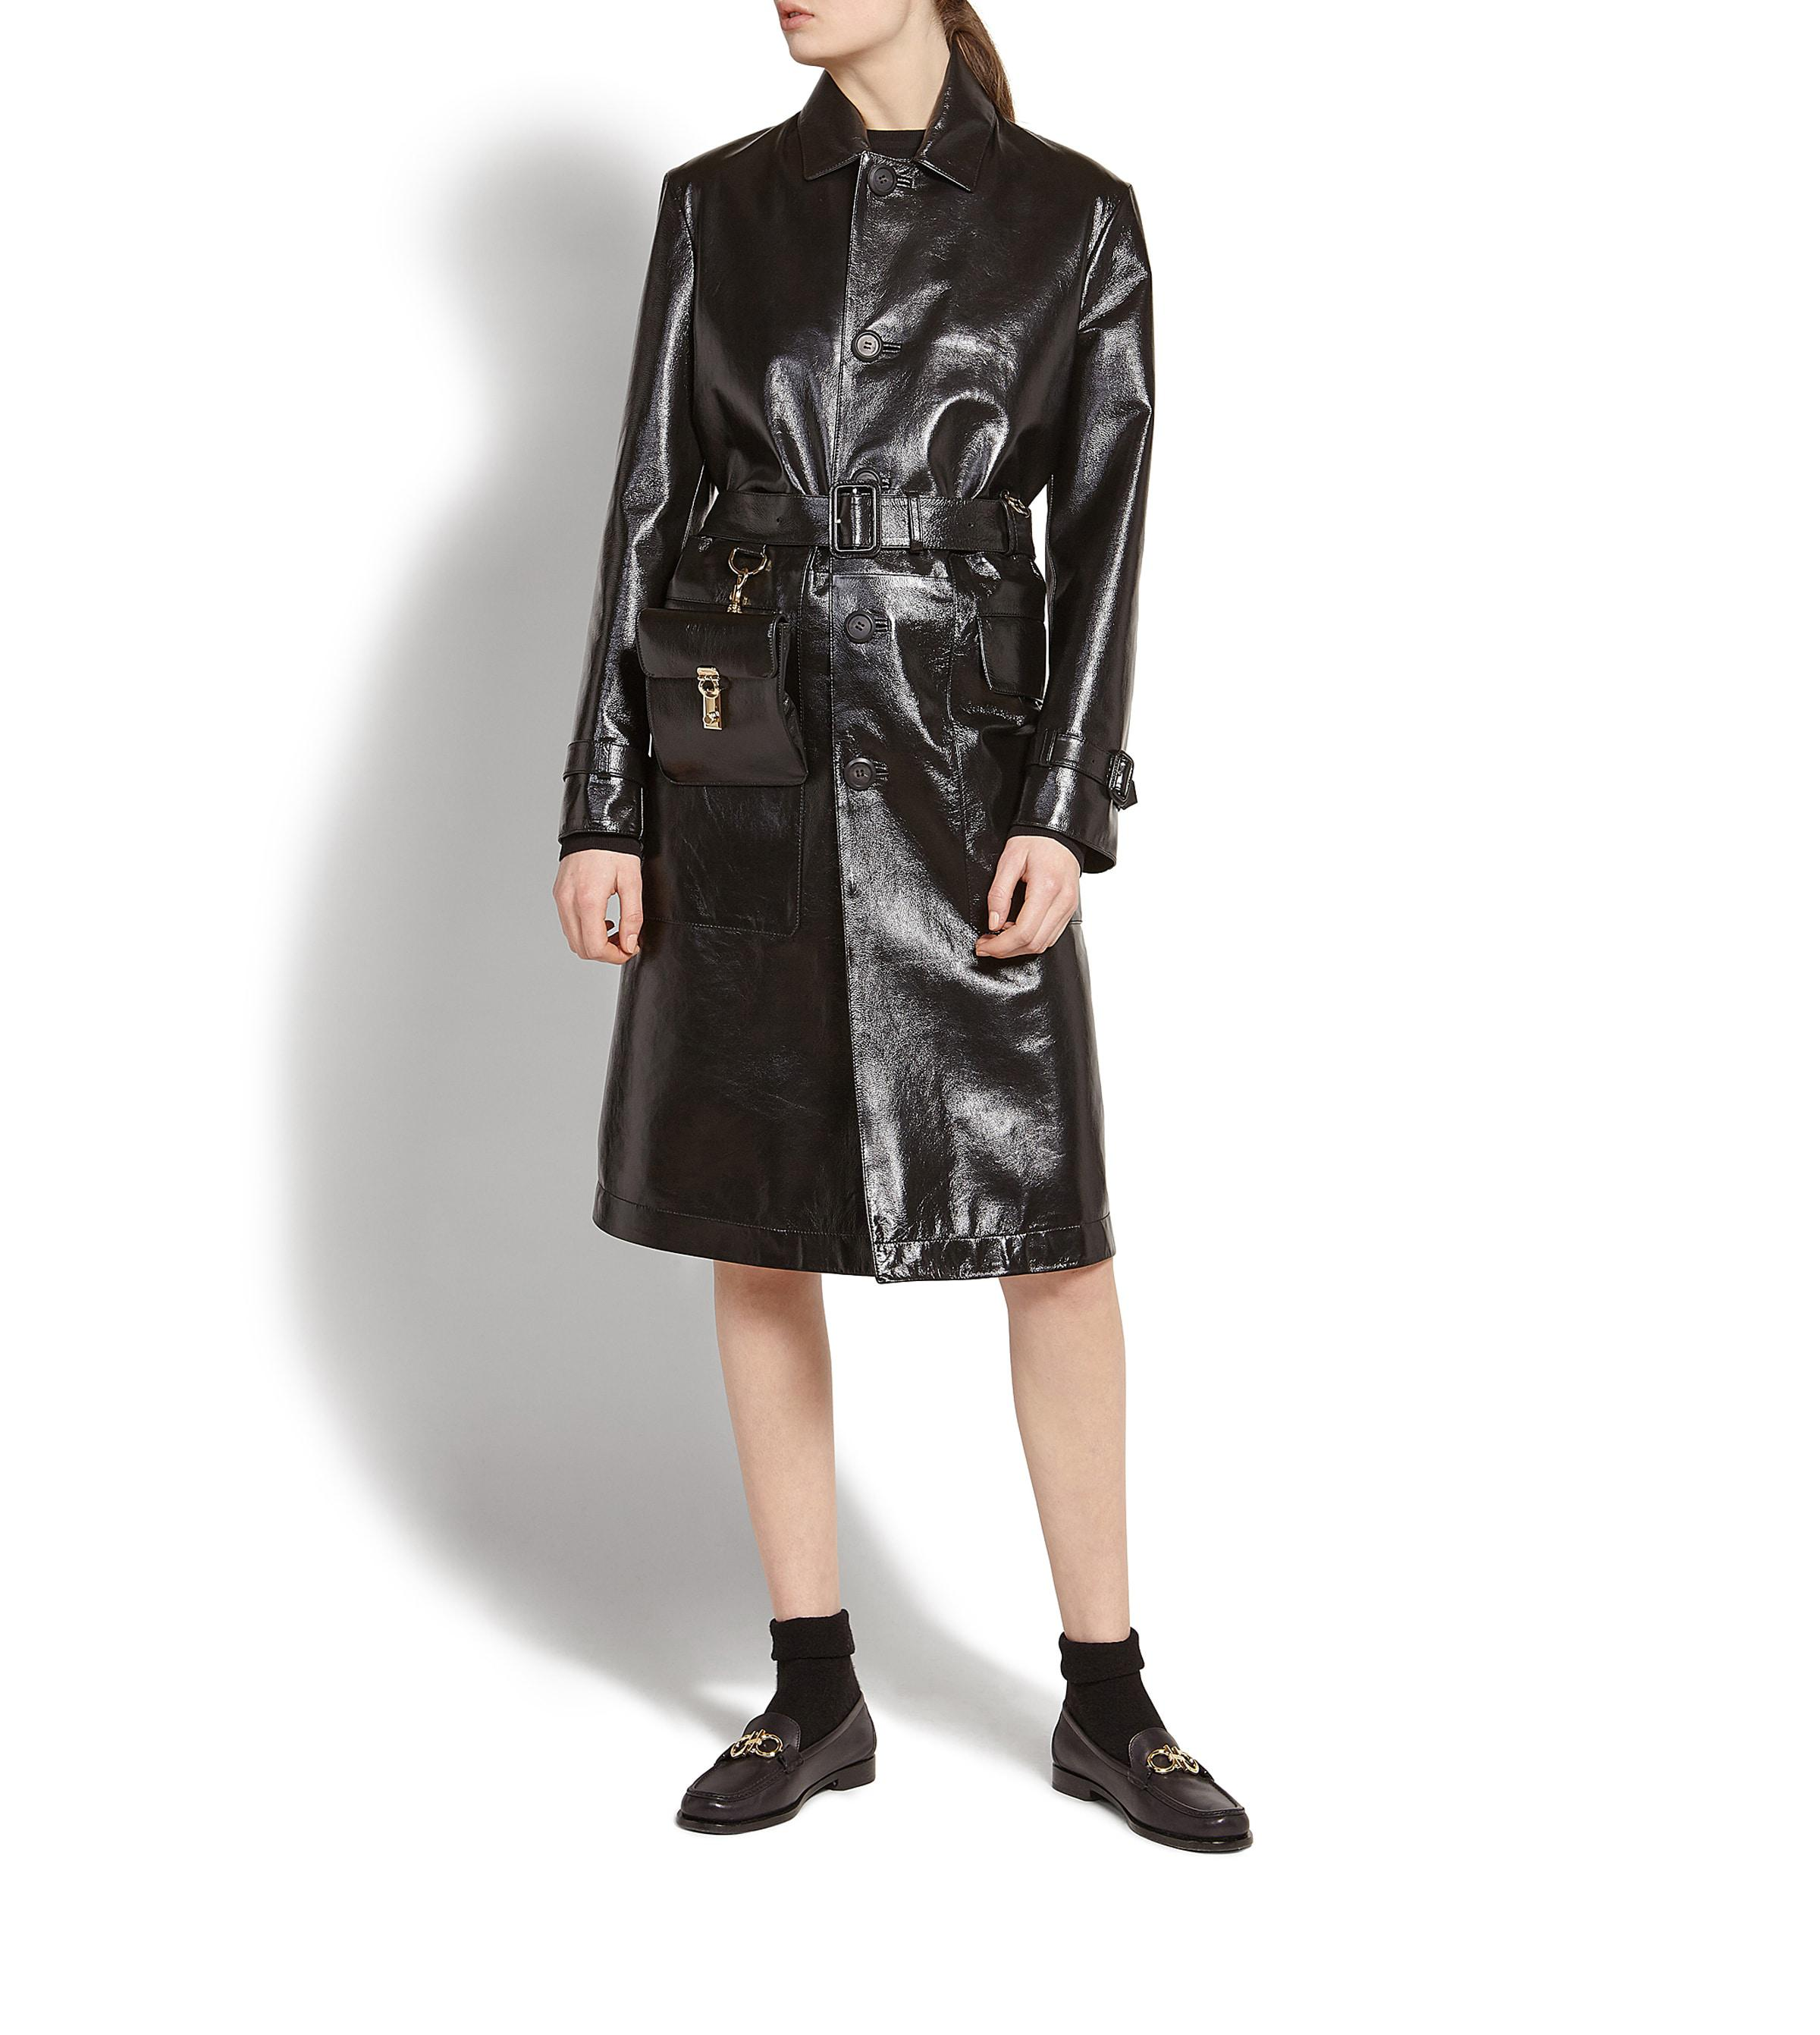 833de7daec6d Lyst - Ferragamo Patent Nappa Leather Trench Coat in Black